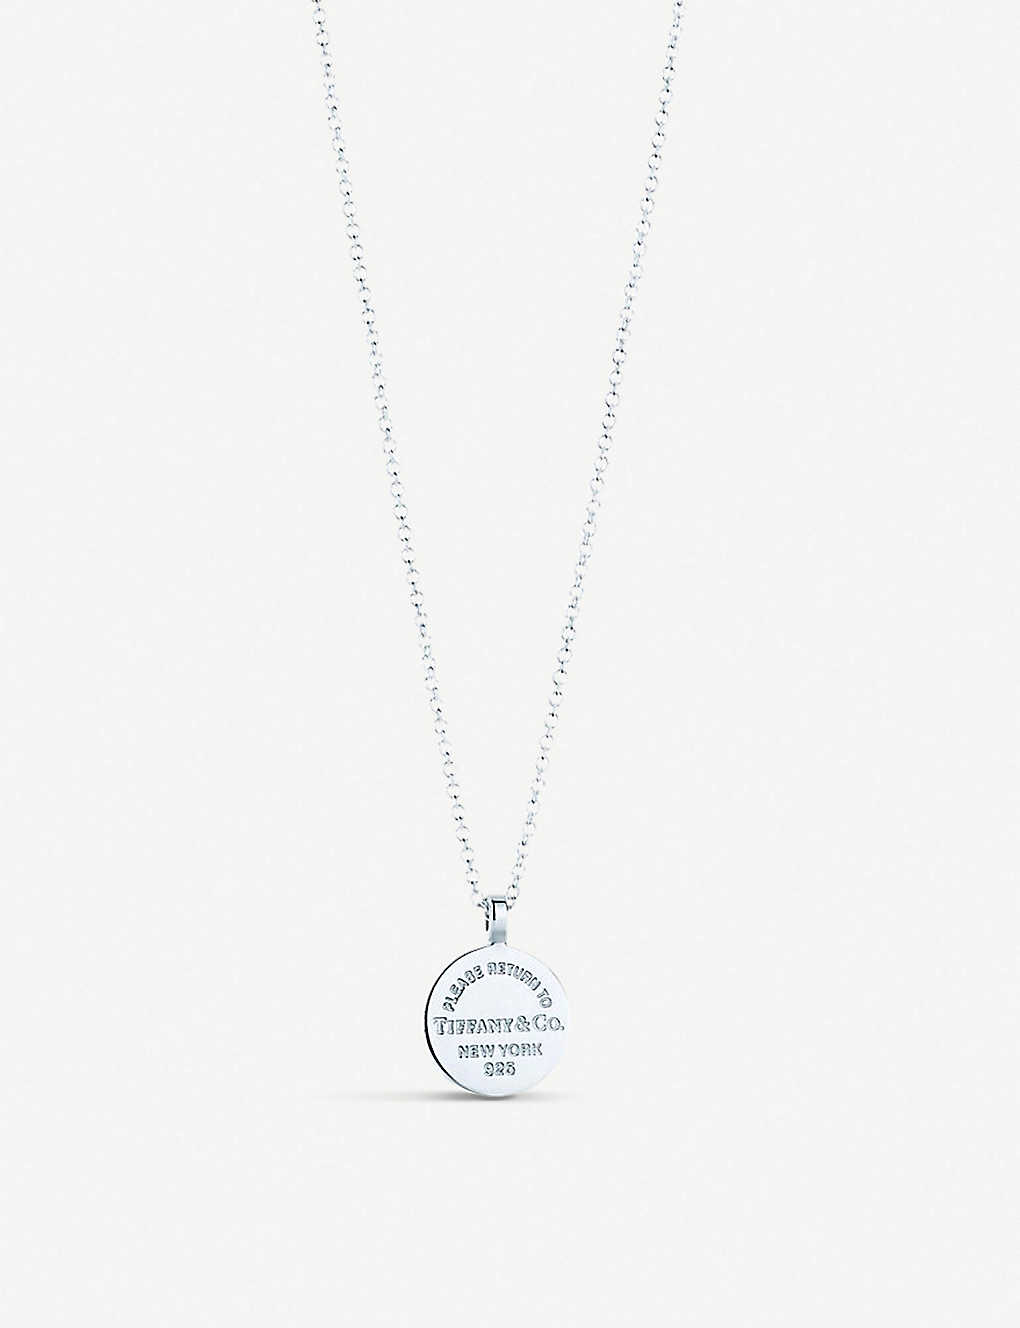 e5dbe44a1 TIFFANY & CO - Return to Tiffany Circle Tag sterling silver pendant ...